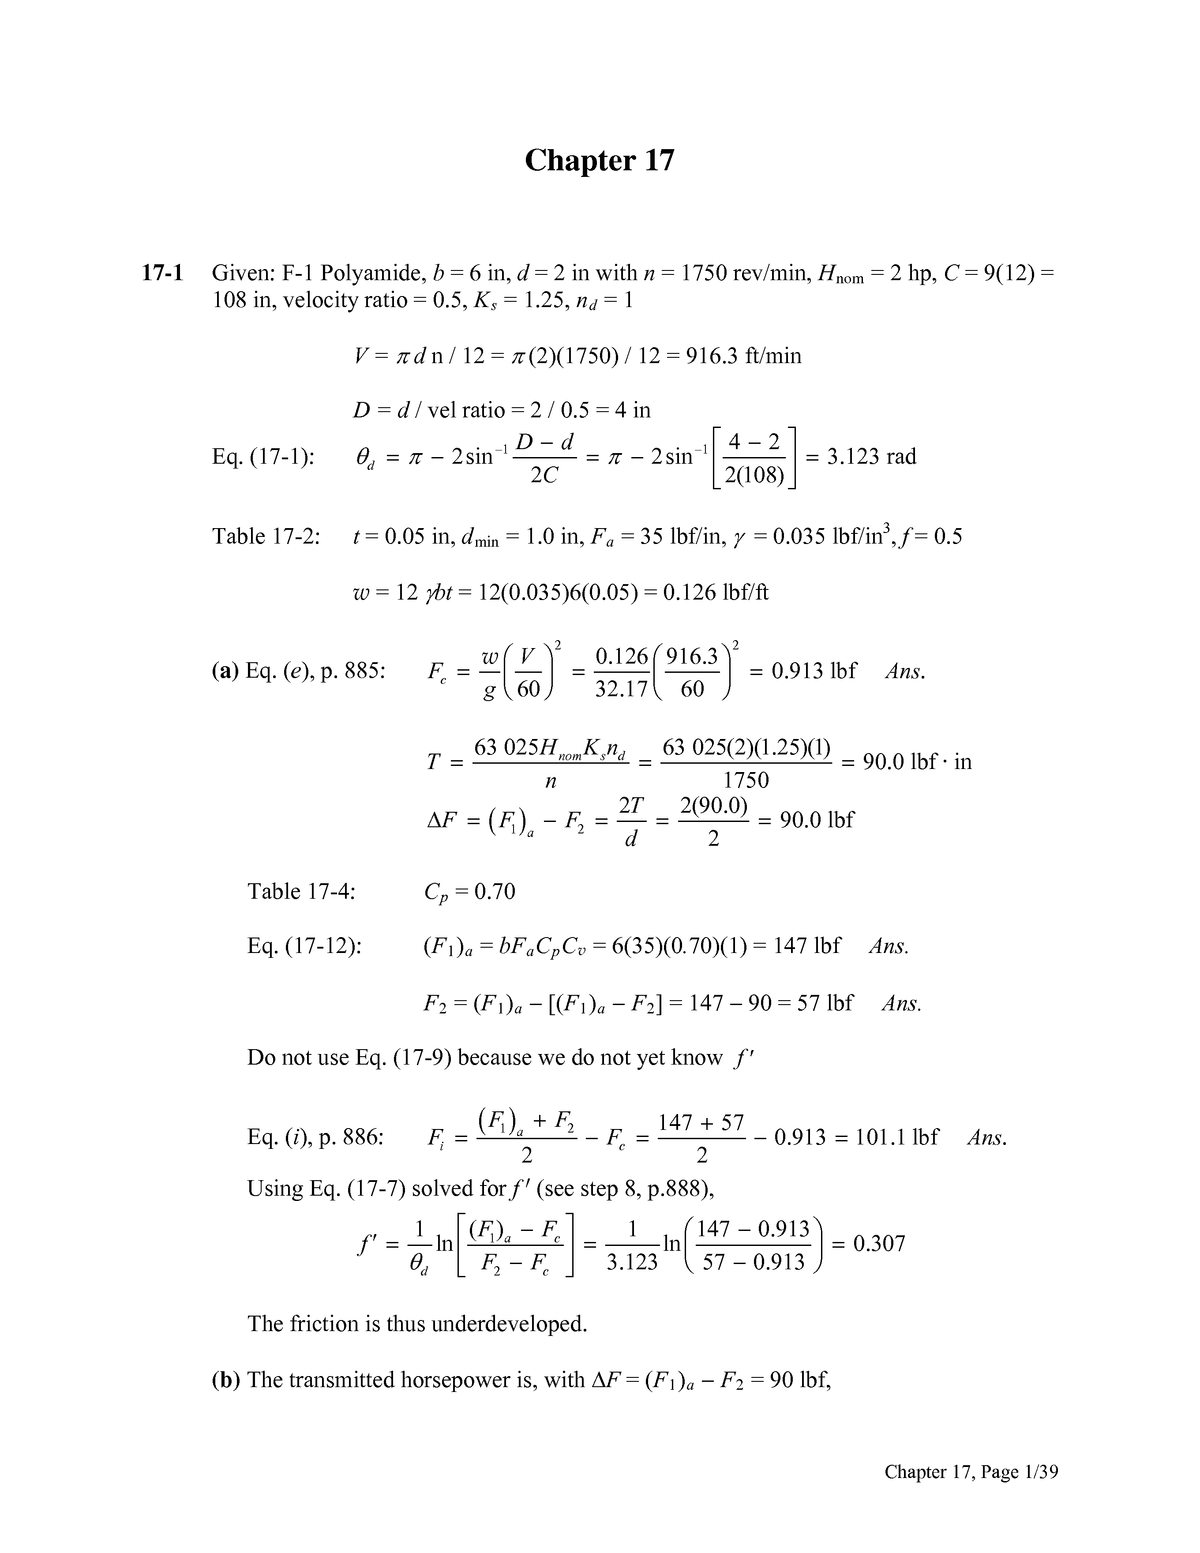 Chapter 17 Solutions Solution Manual Shigley S Mechanical Engineering Design Studocu